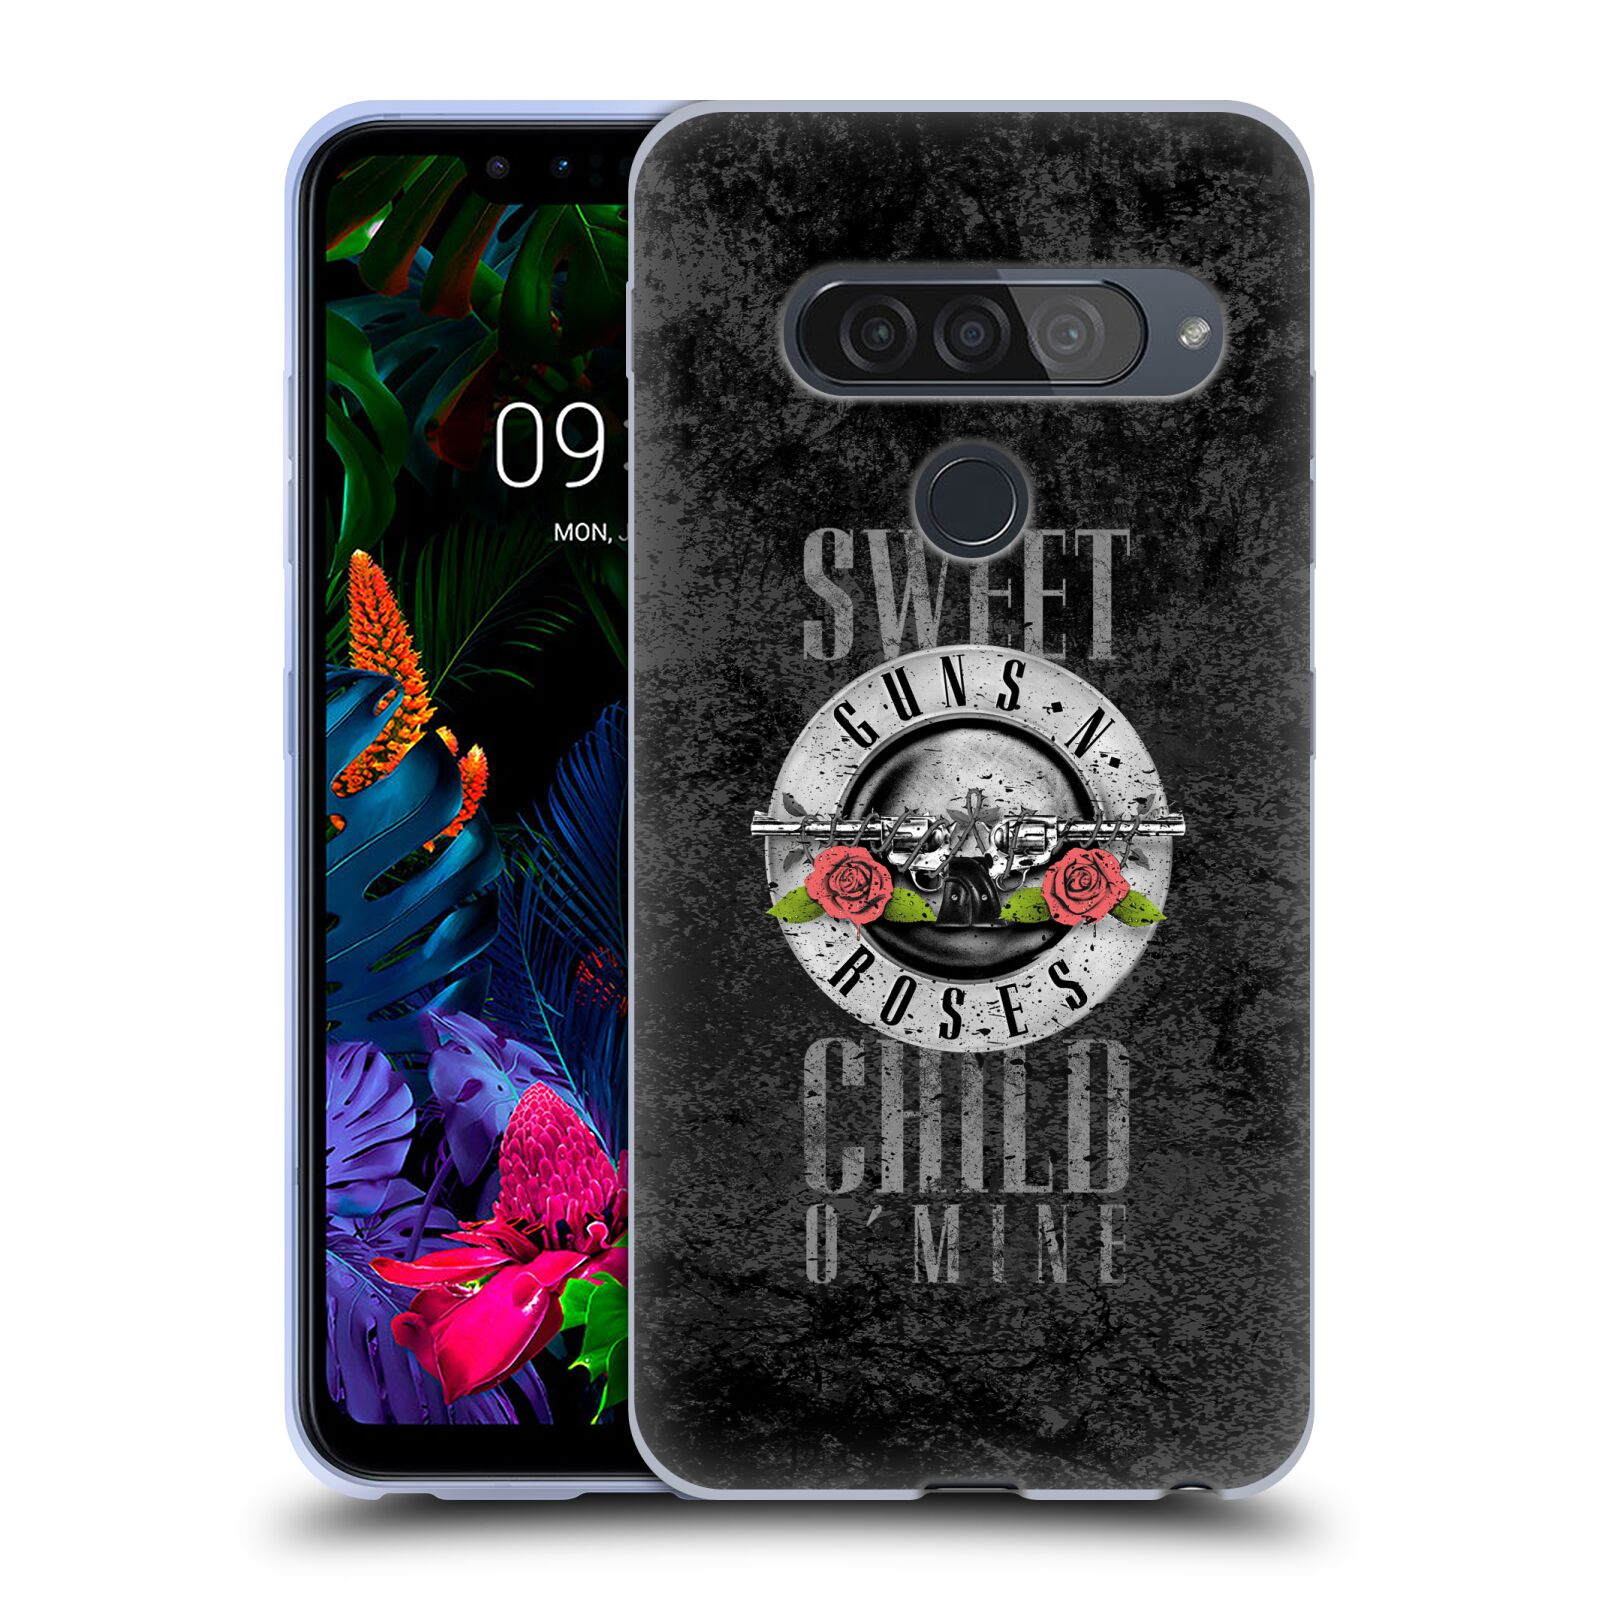 Silikonové pouzdro na mobil LG G8s ThinQ - Head Case - Guns N' Roses - Sweet Child